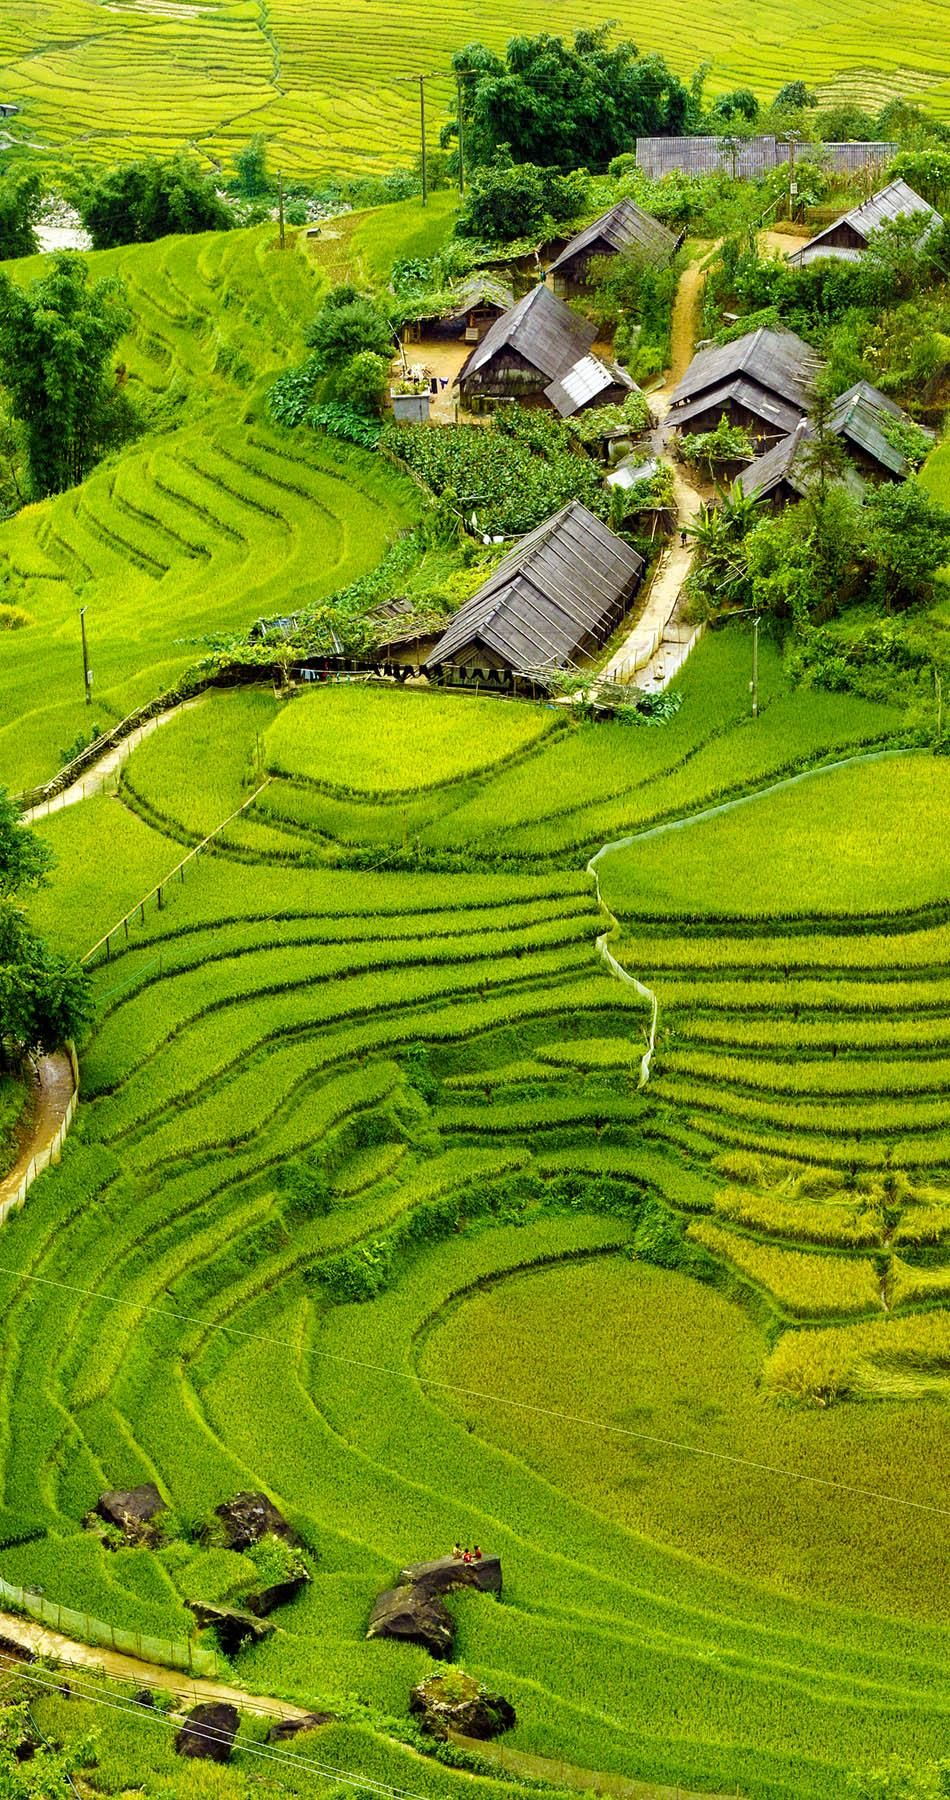 17 Unbelivably Photos Of Rice Fields. Stunning No. #15